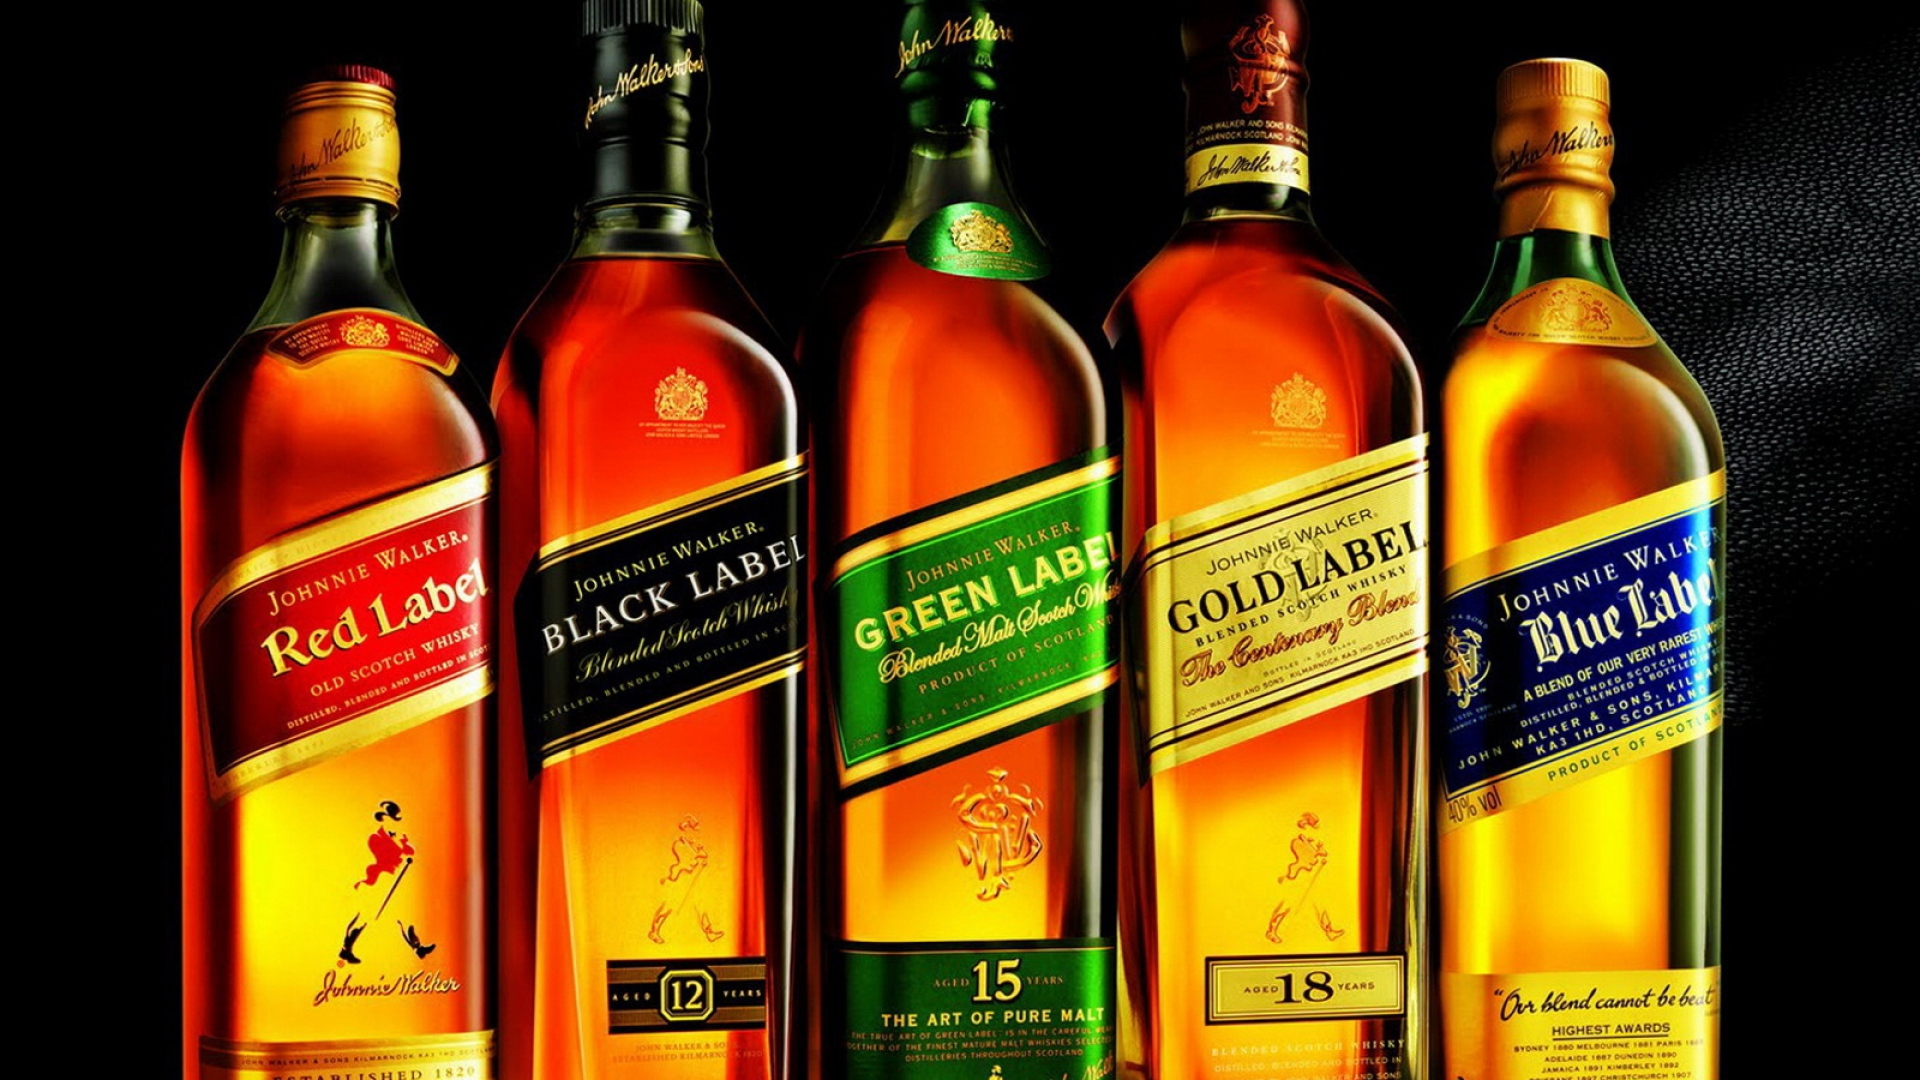 Download Wallpaper 1920x1080 Whiskey, Johnnie Walker